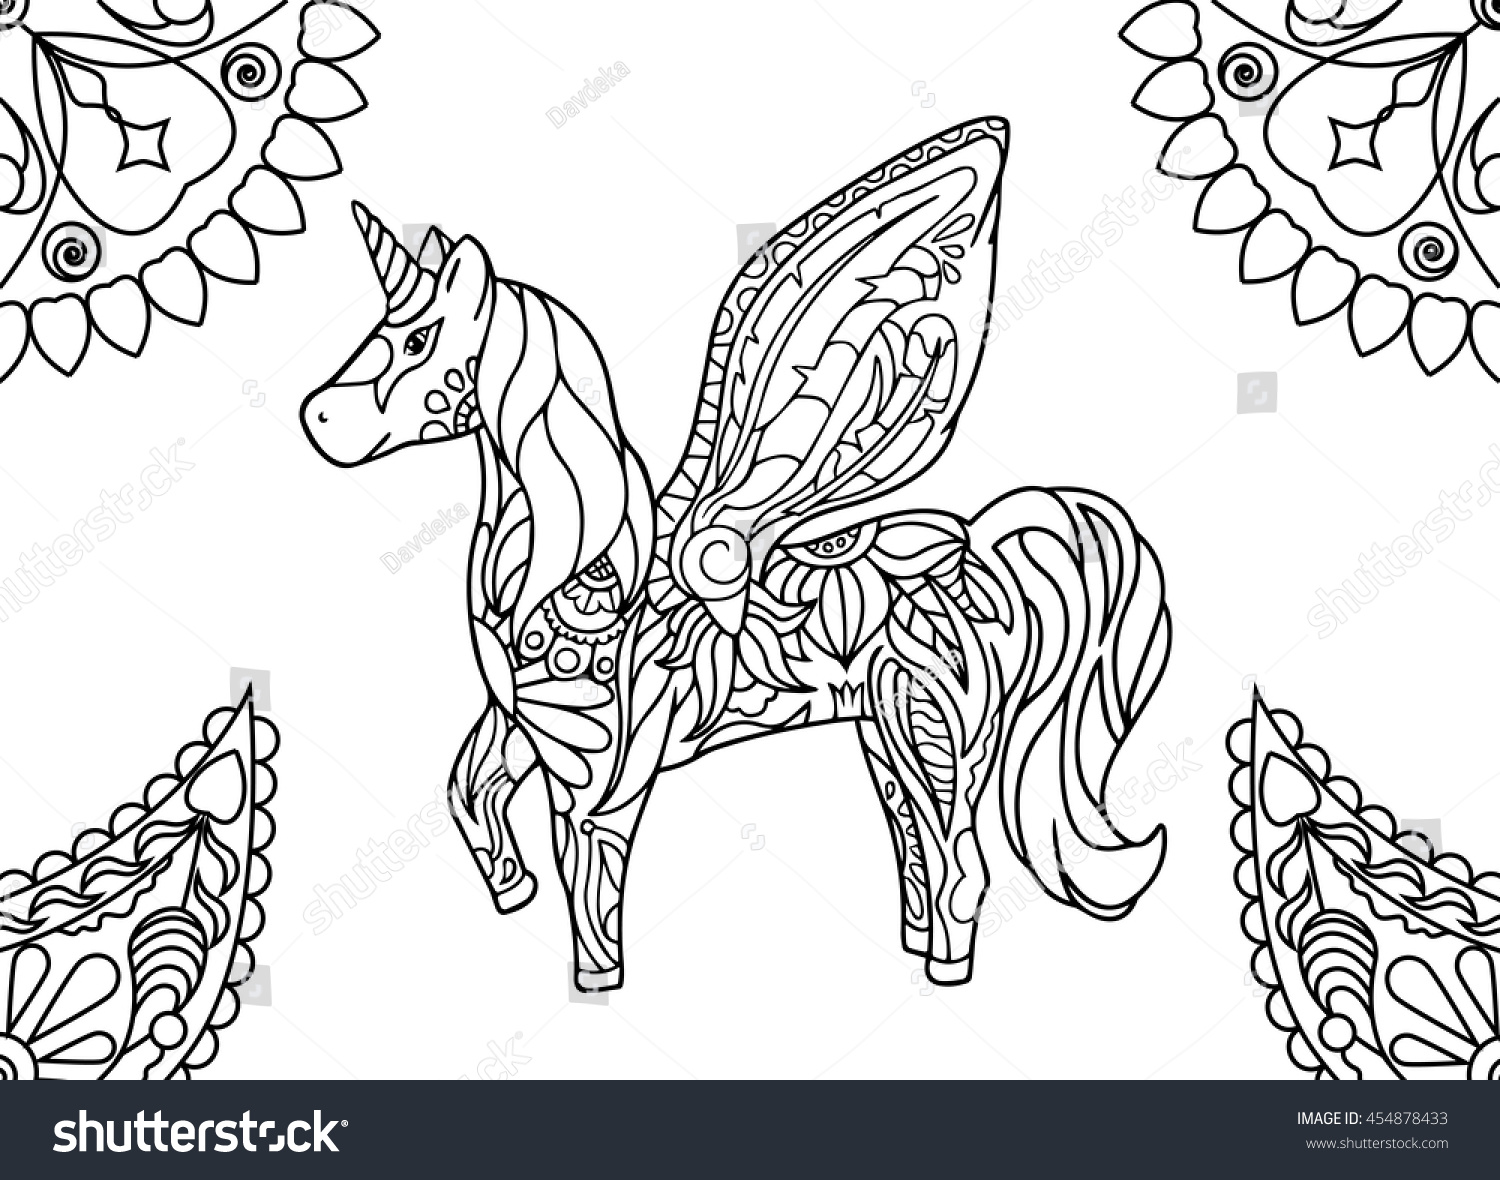 Unicorn Mandalas Coloring Page Hornicorn Outlined Stock Vector ...